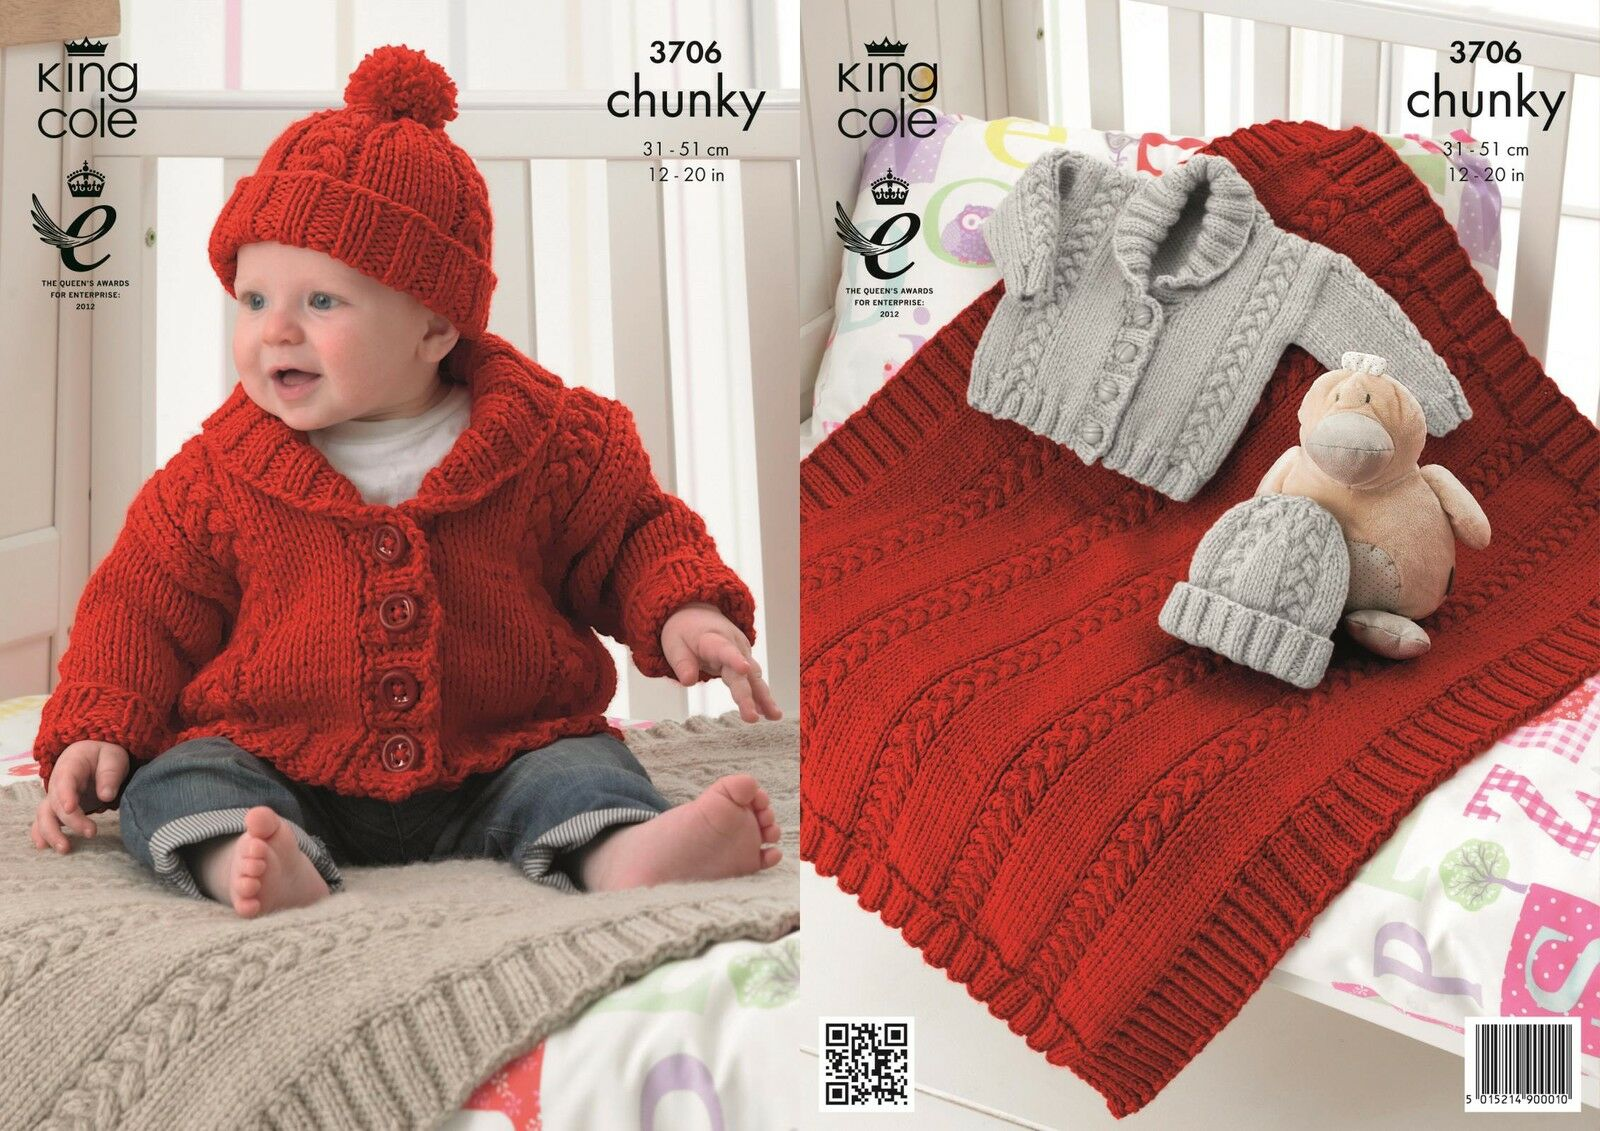 King Cole 3706 Knitting Pattern Baby Jacket, Hat and Blanket in Comfort Chunk...